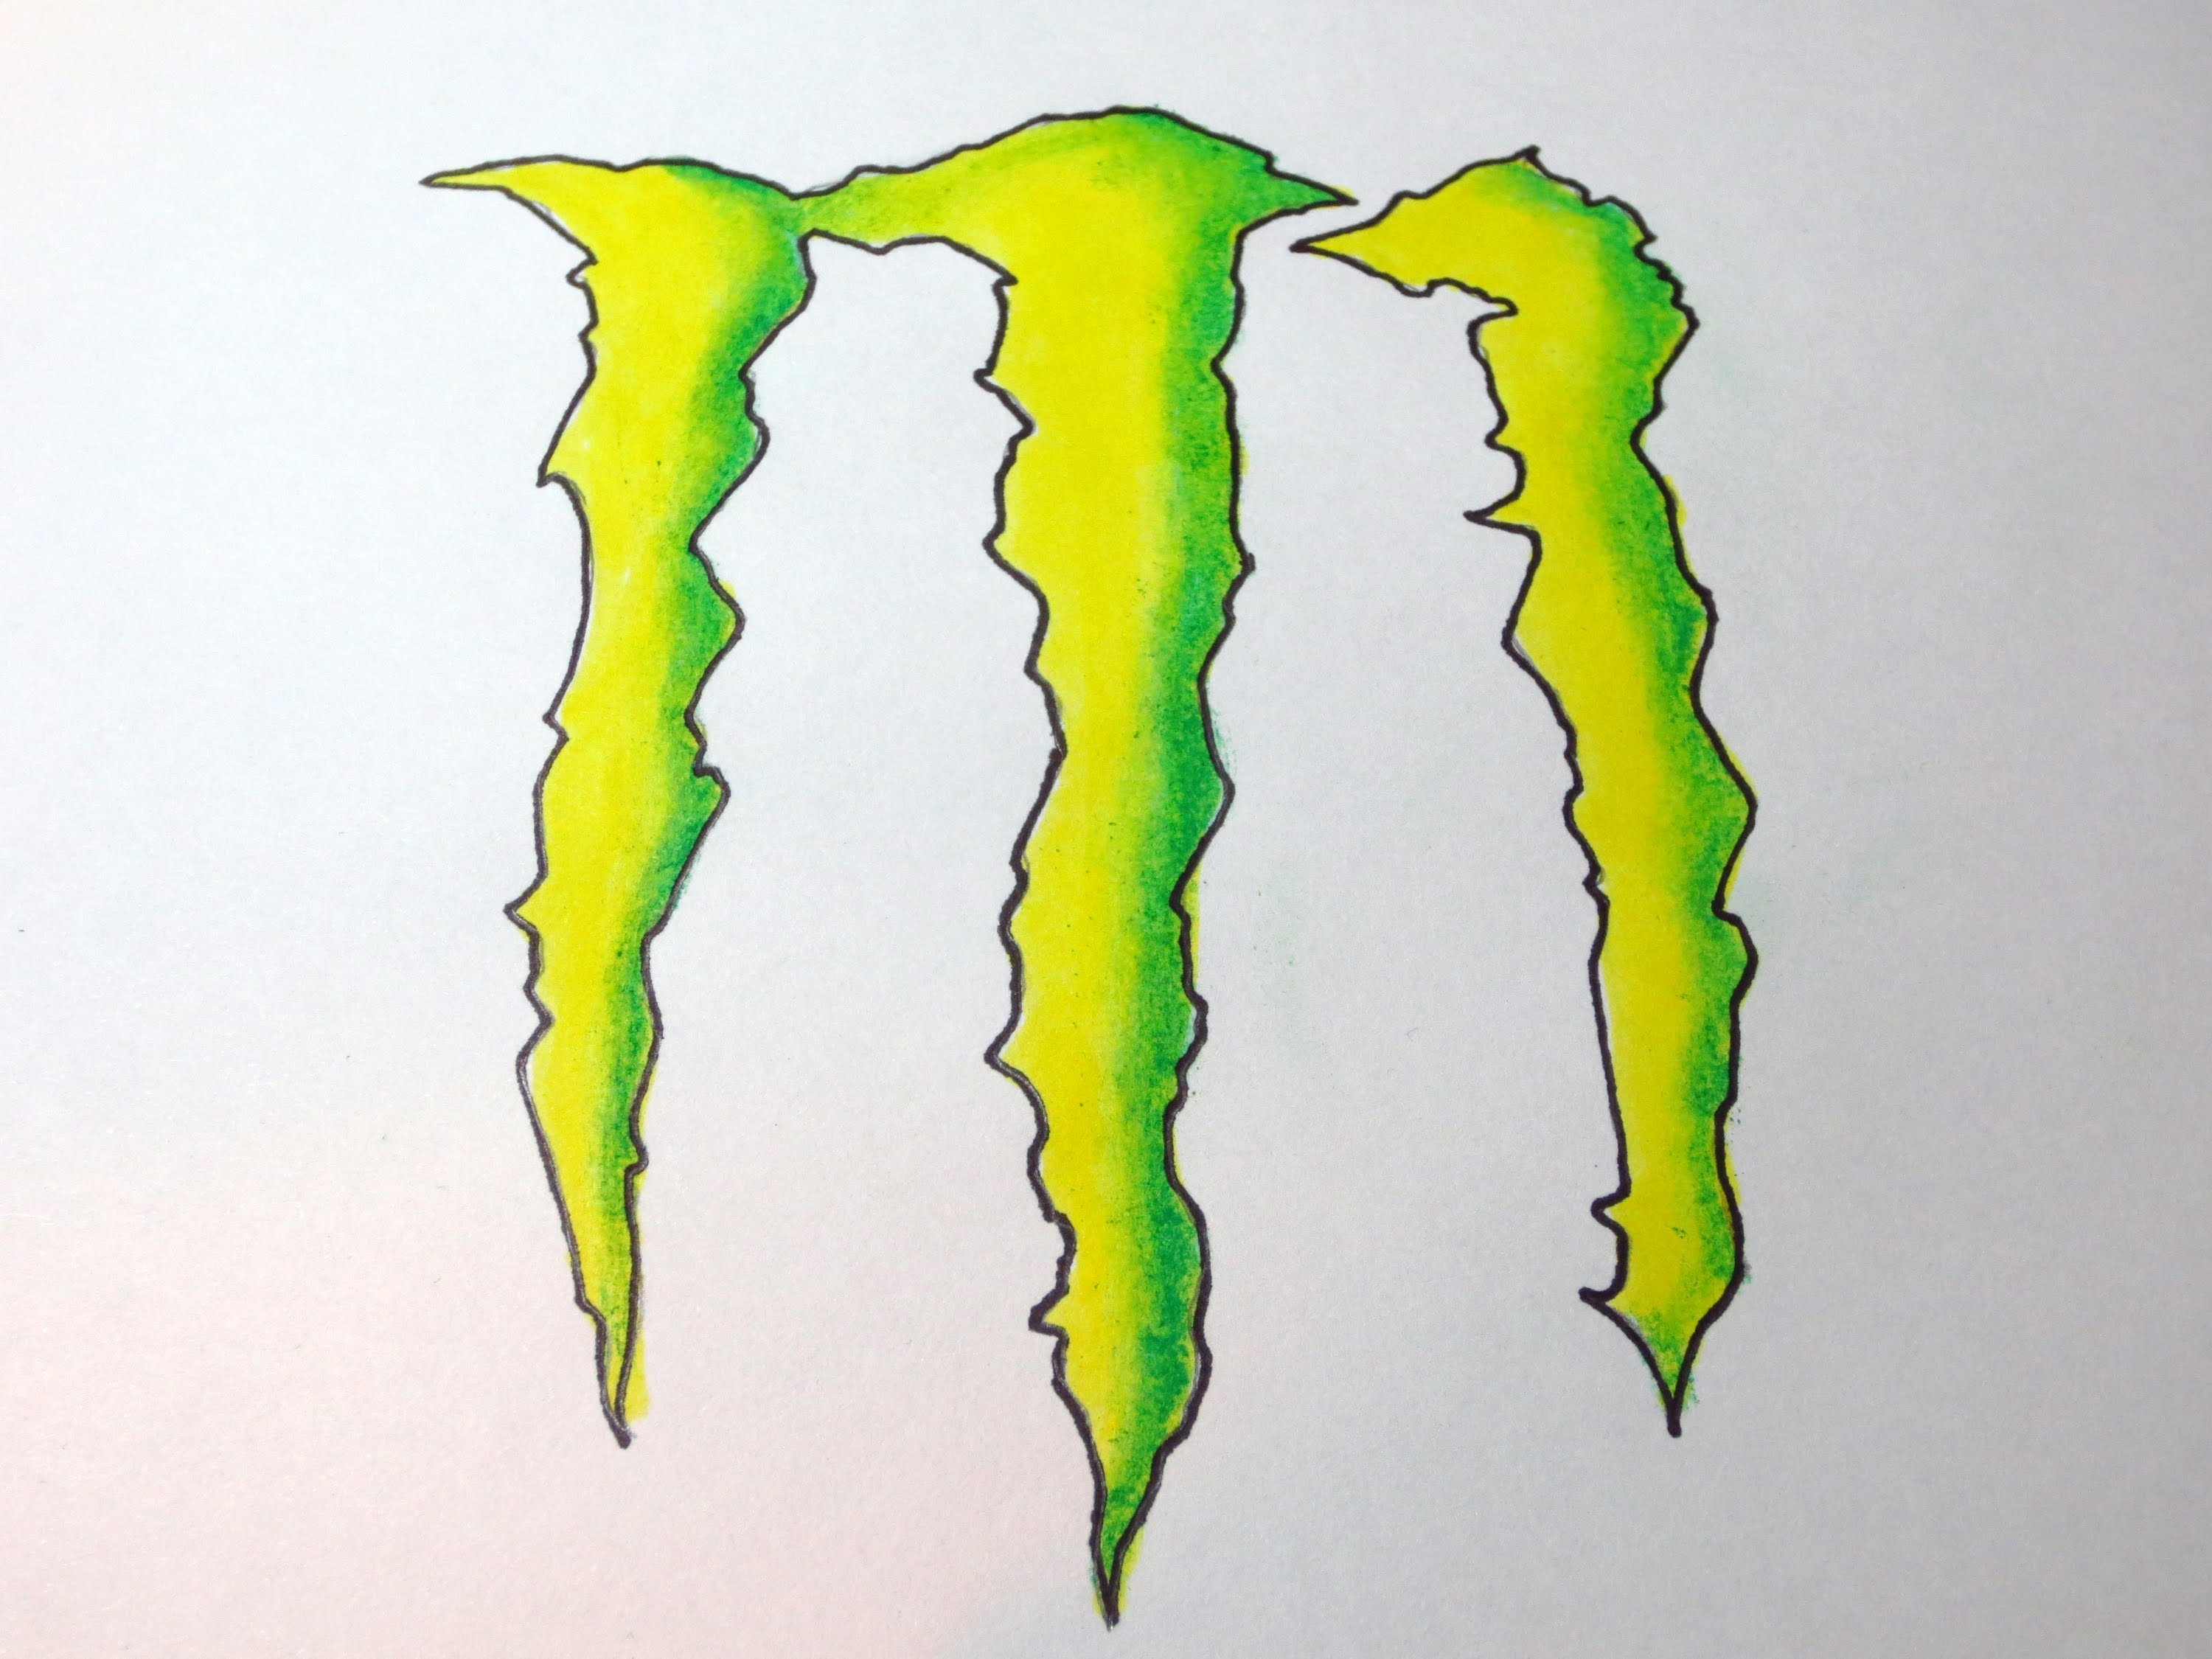 3000x2250 How To Draw Monster Energy Drink Logo